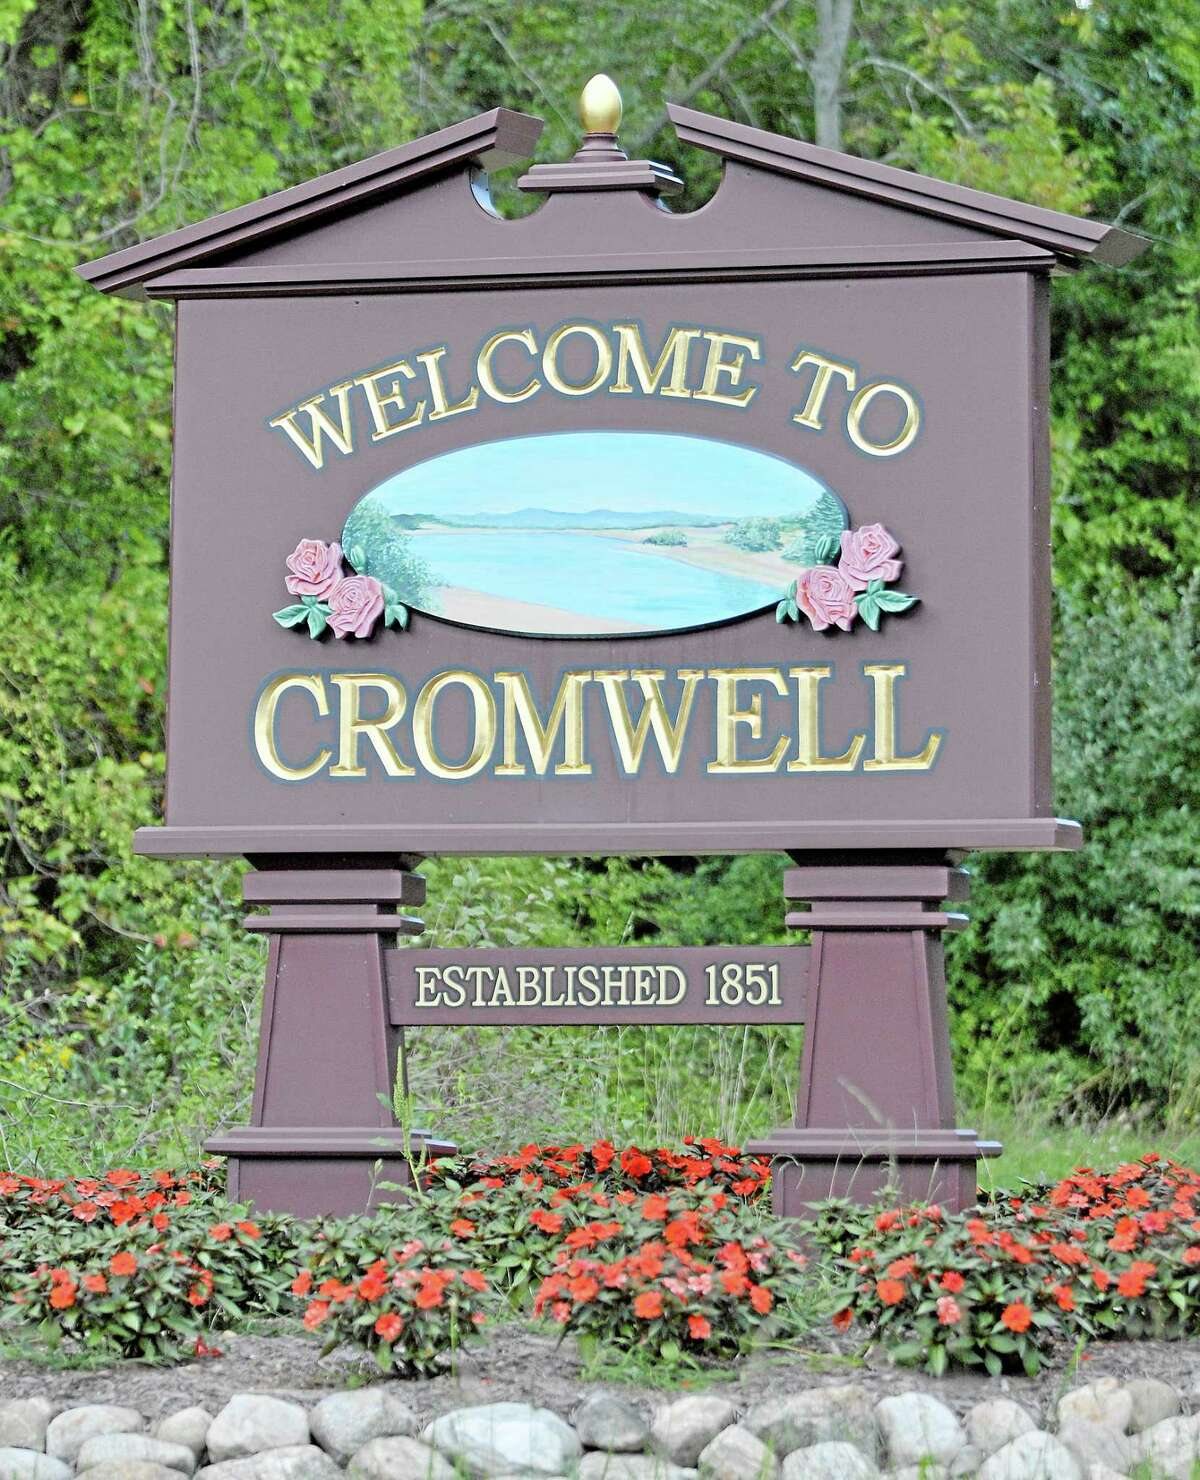 Cromwell town sign. Catherine Avalone — The Middletown Press